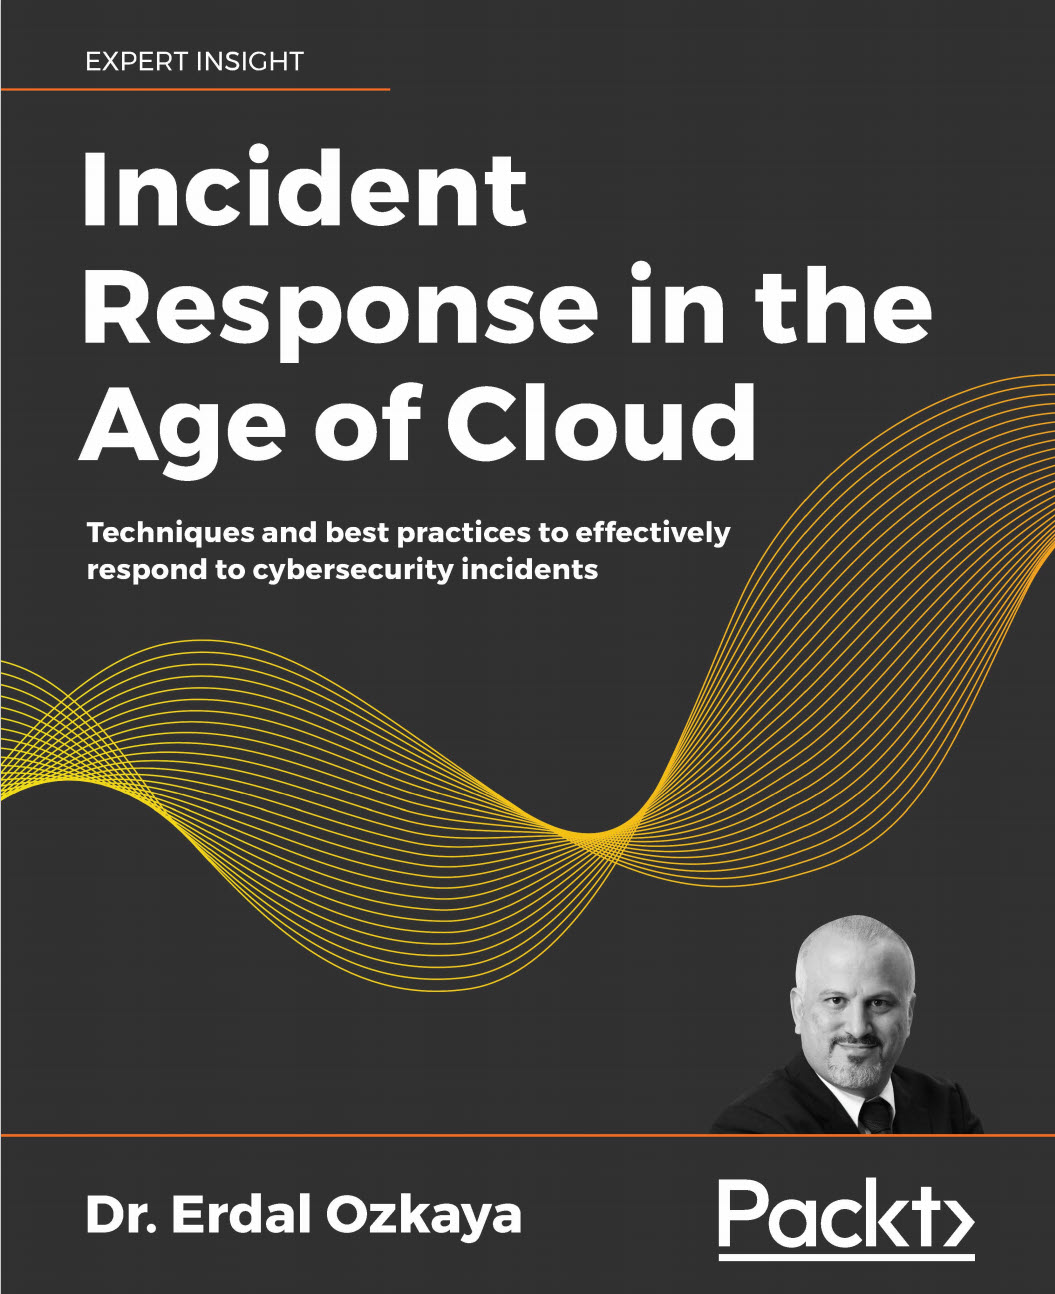 Cyber incident response by Erdal